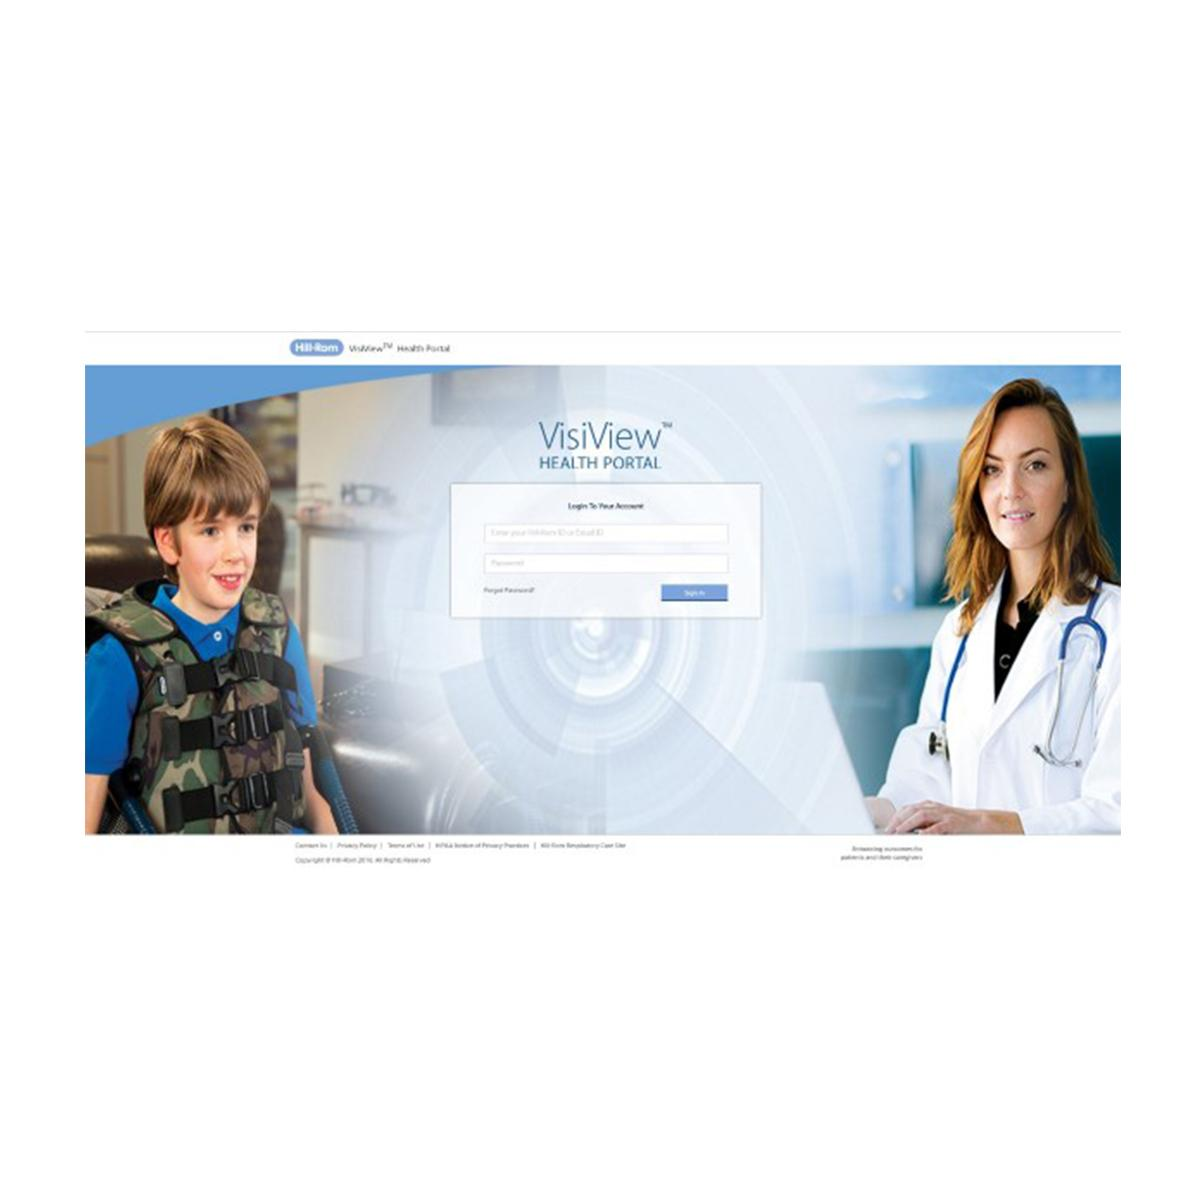 Illustration of how data moves from the VisiVest system to a data hub to a Hillrom secure server to the VisiView health portal